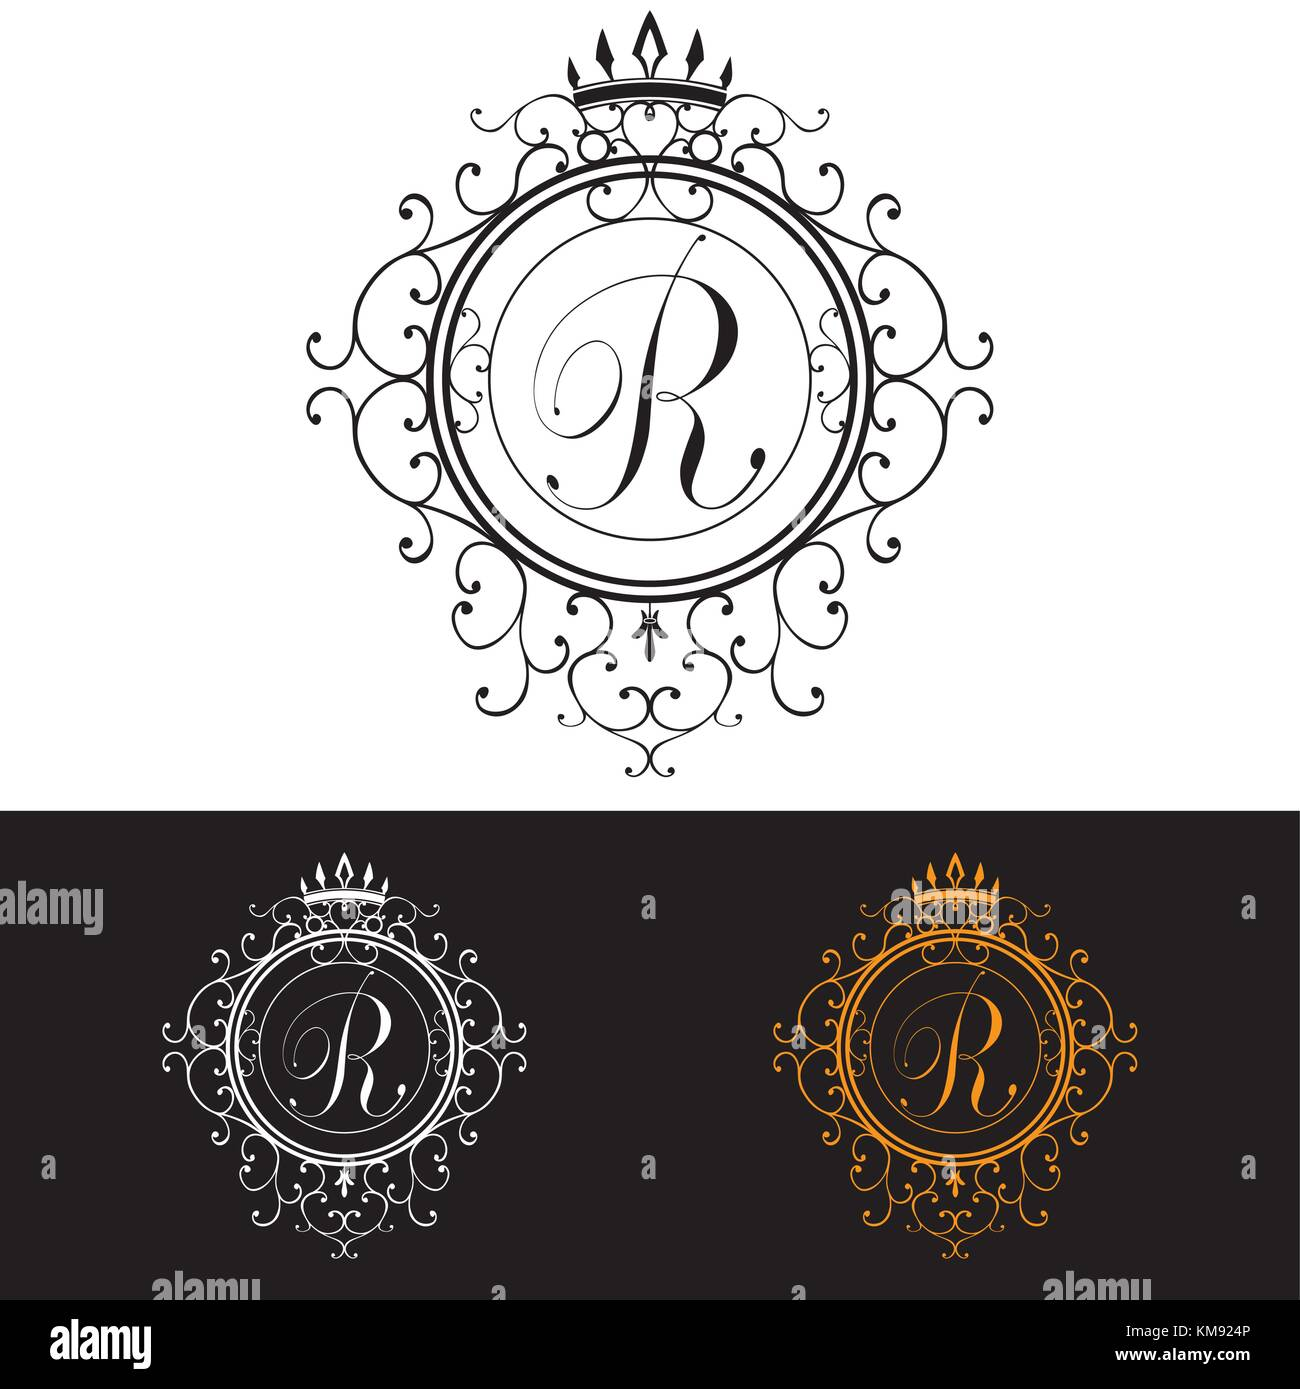 Letter r luxury logo template flourishes calligraphic elegant stock letter r luxury logo template flourishes calligraphic elegant ornament lines business sign identity for restaurant royalty boutique hotel heral friedricerecipe Choice Image